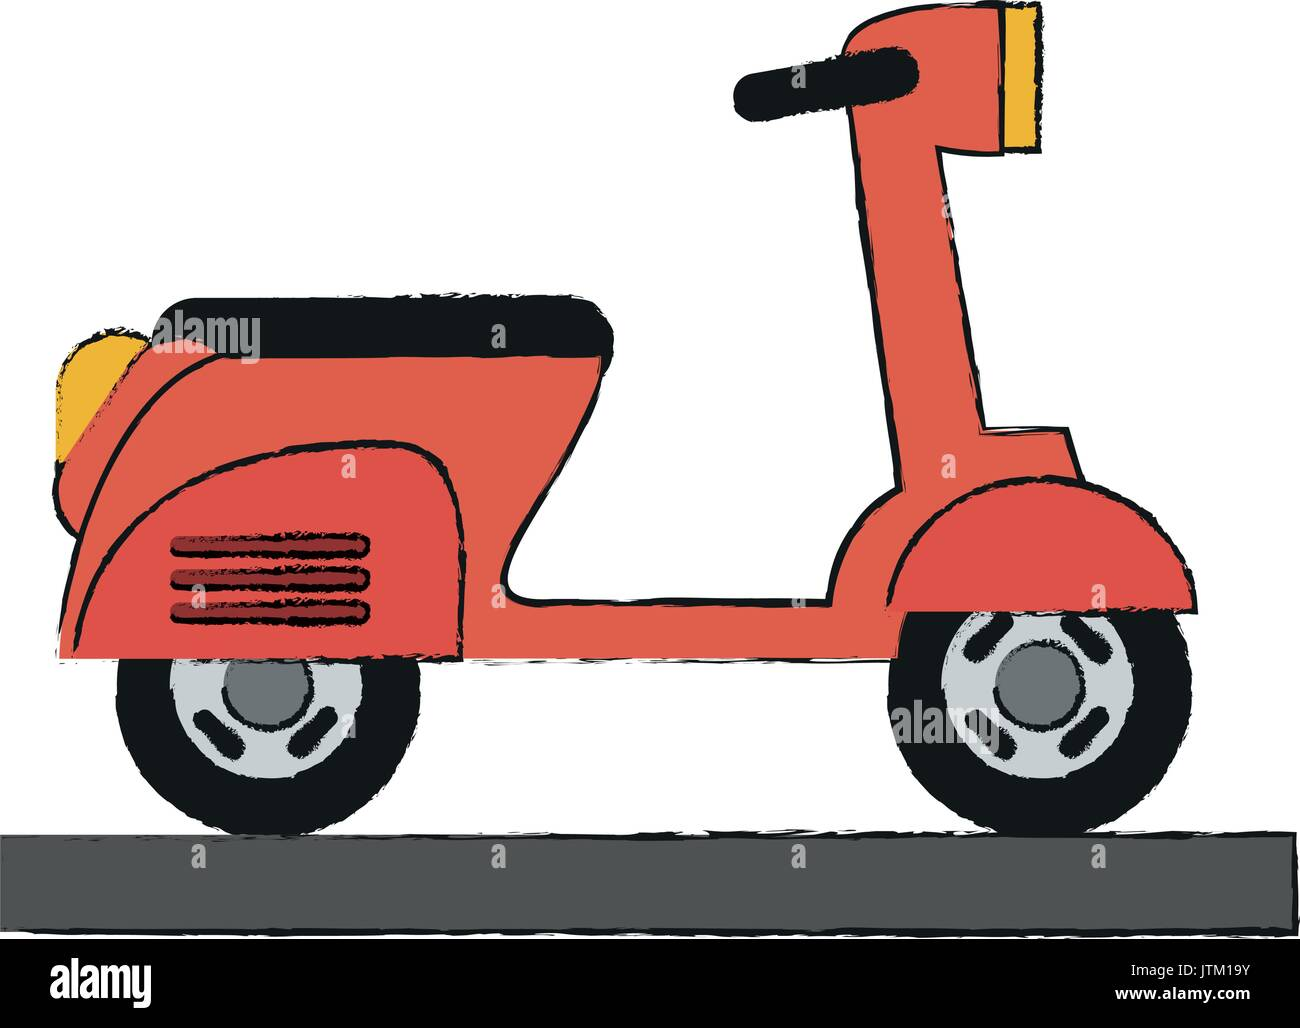 scooter vector illustration - Stock Vector